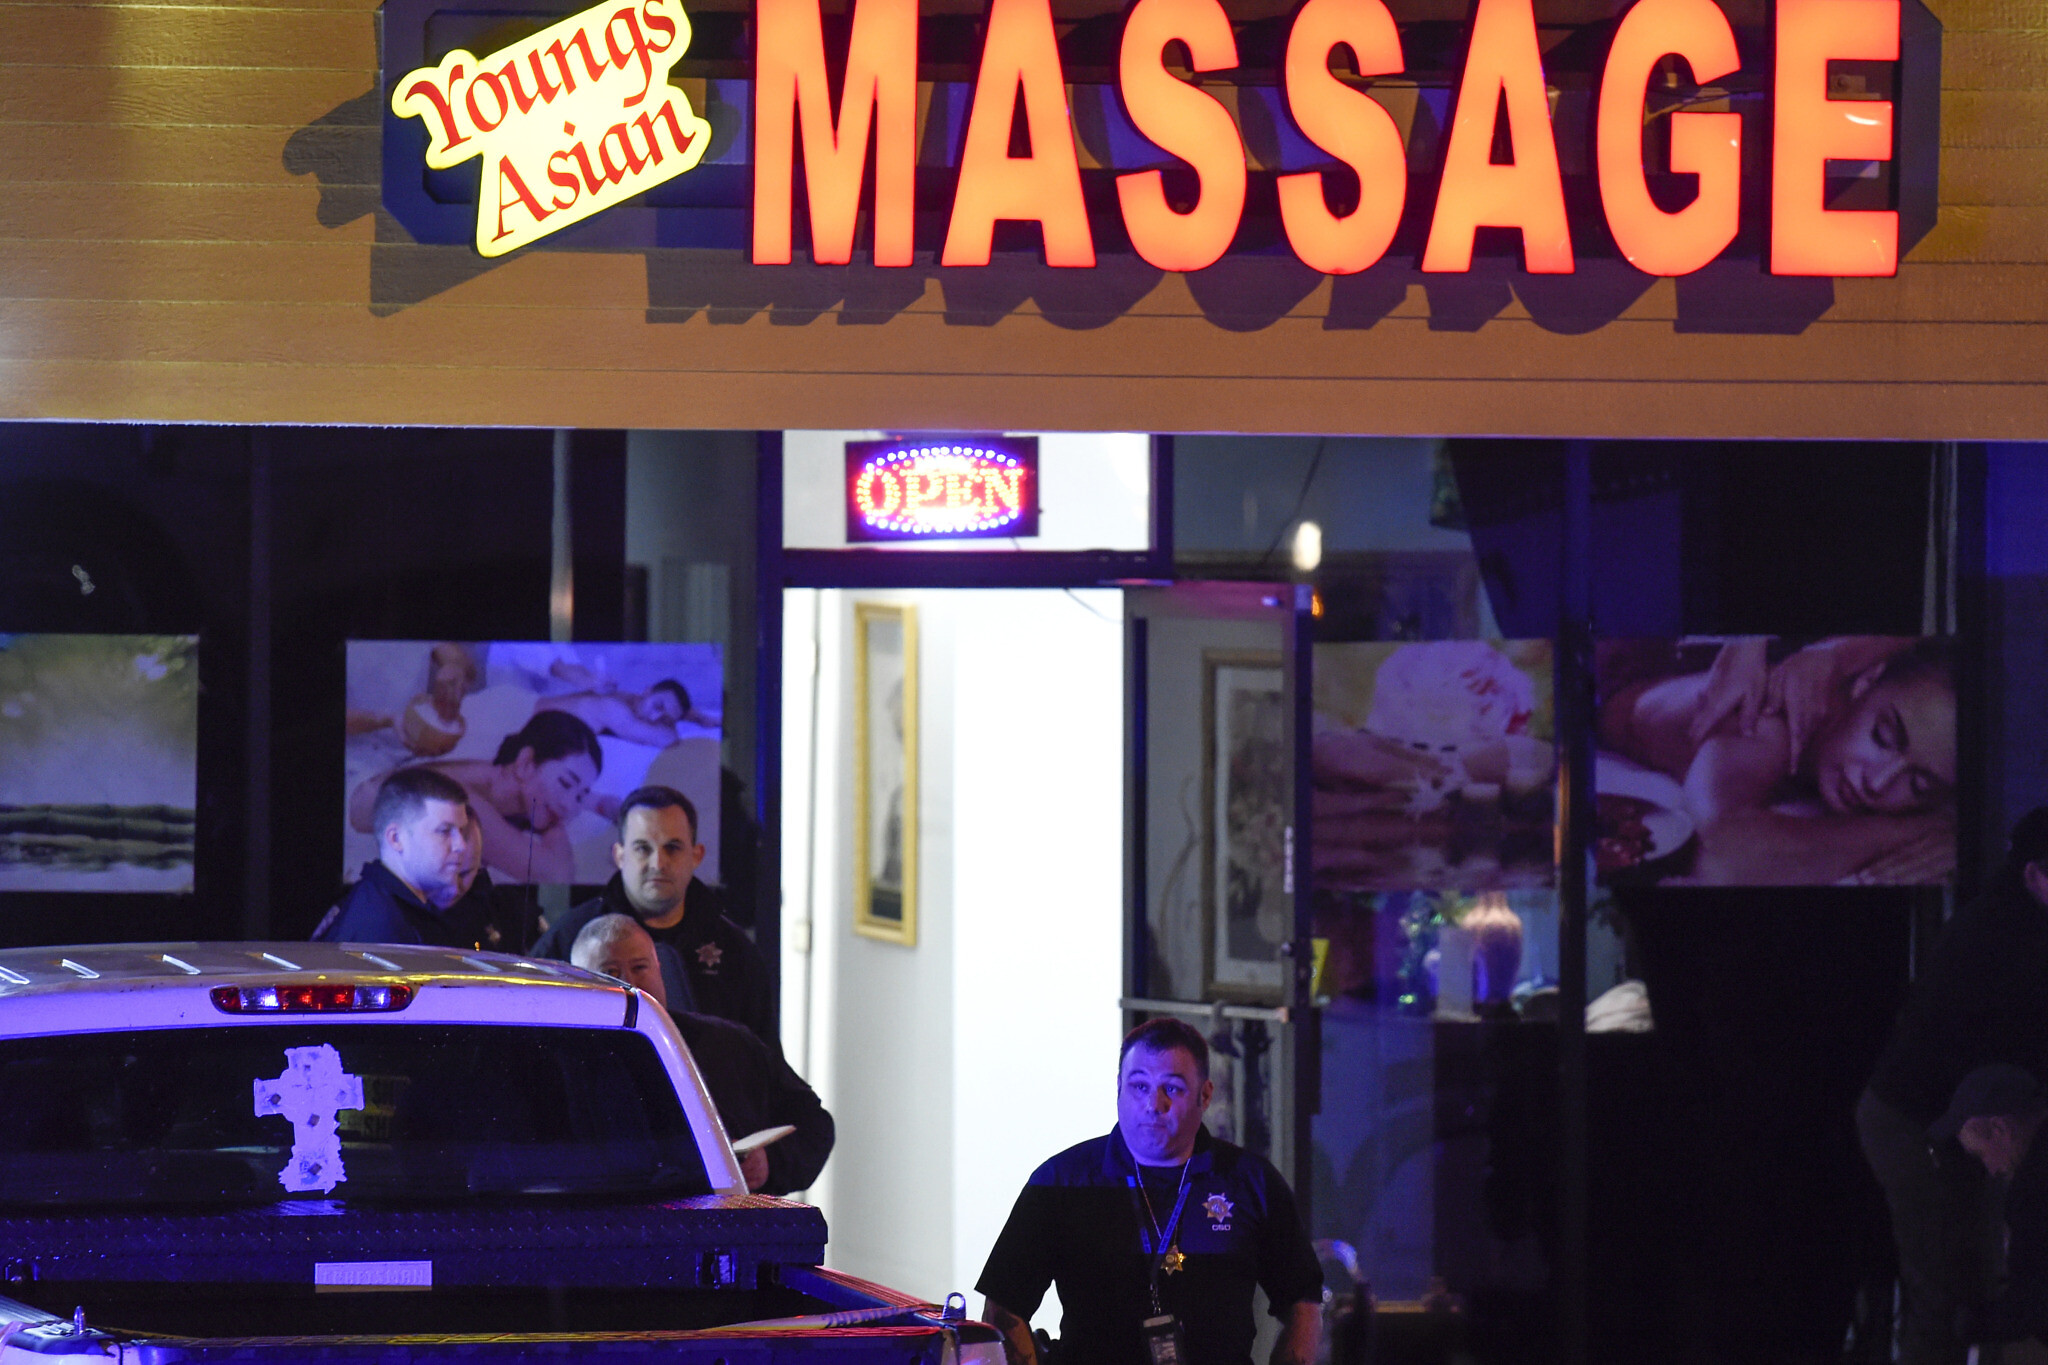 Eight killed, one arrested after three massage parlours shot up in US